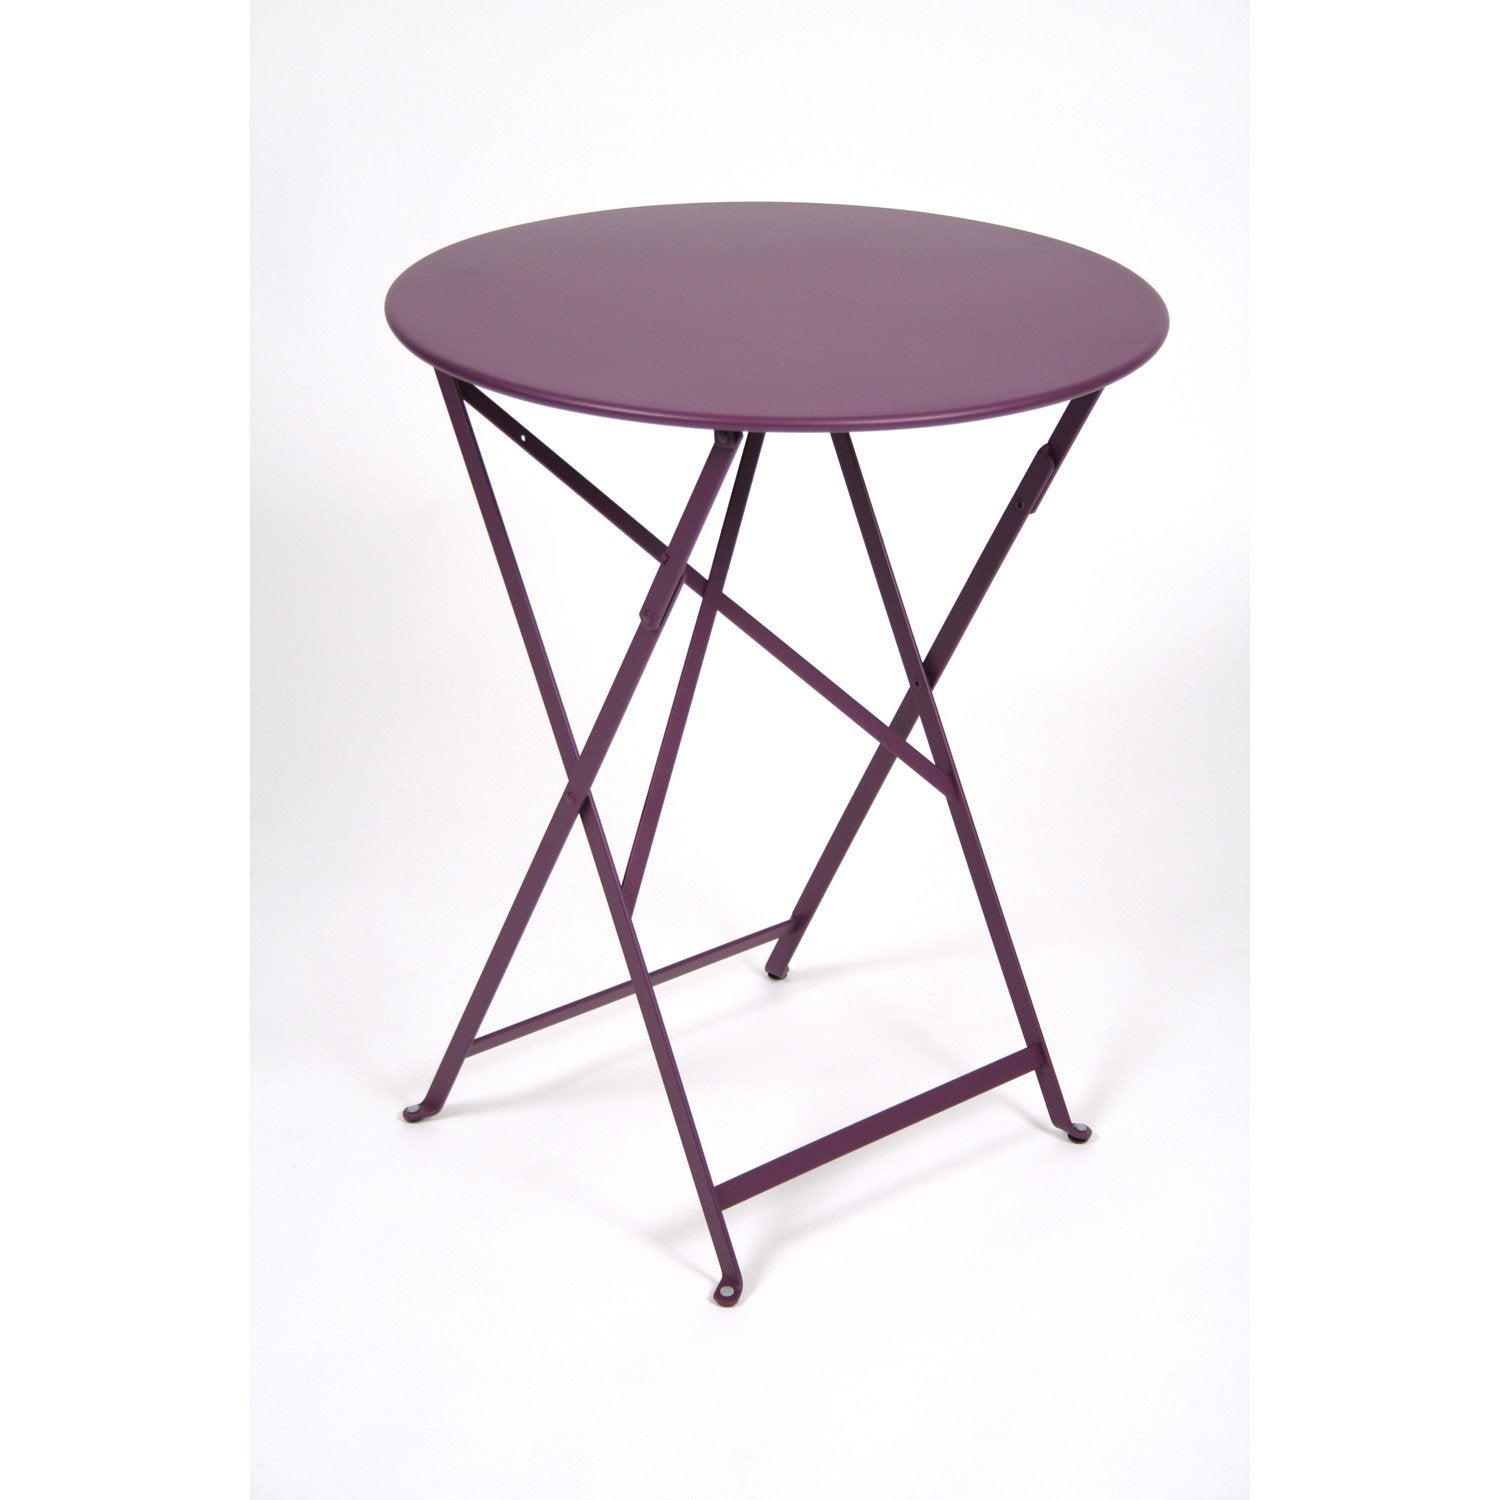 Table de jardin ronde bistro fermob leroy merlin for Petite table ronde cuisine